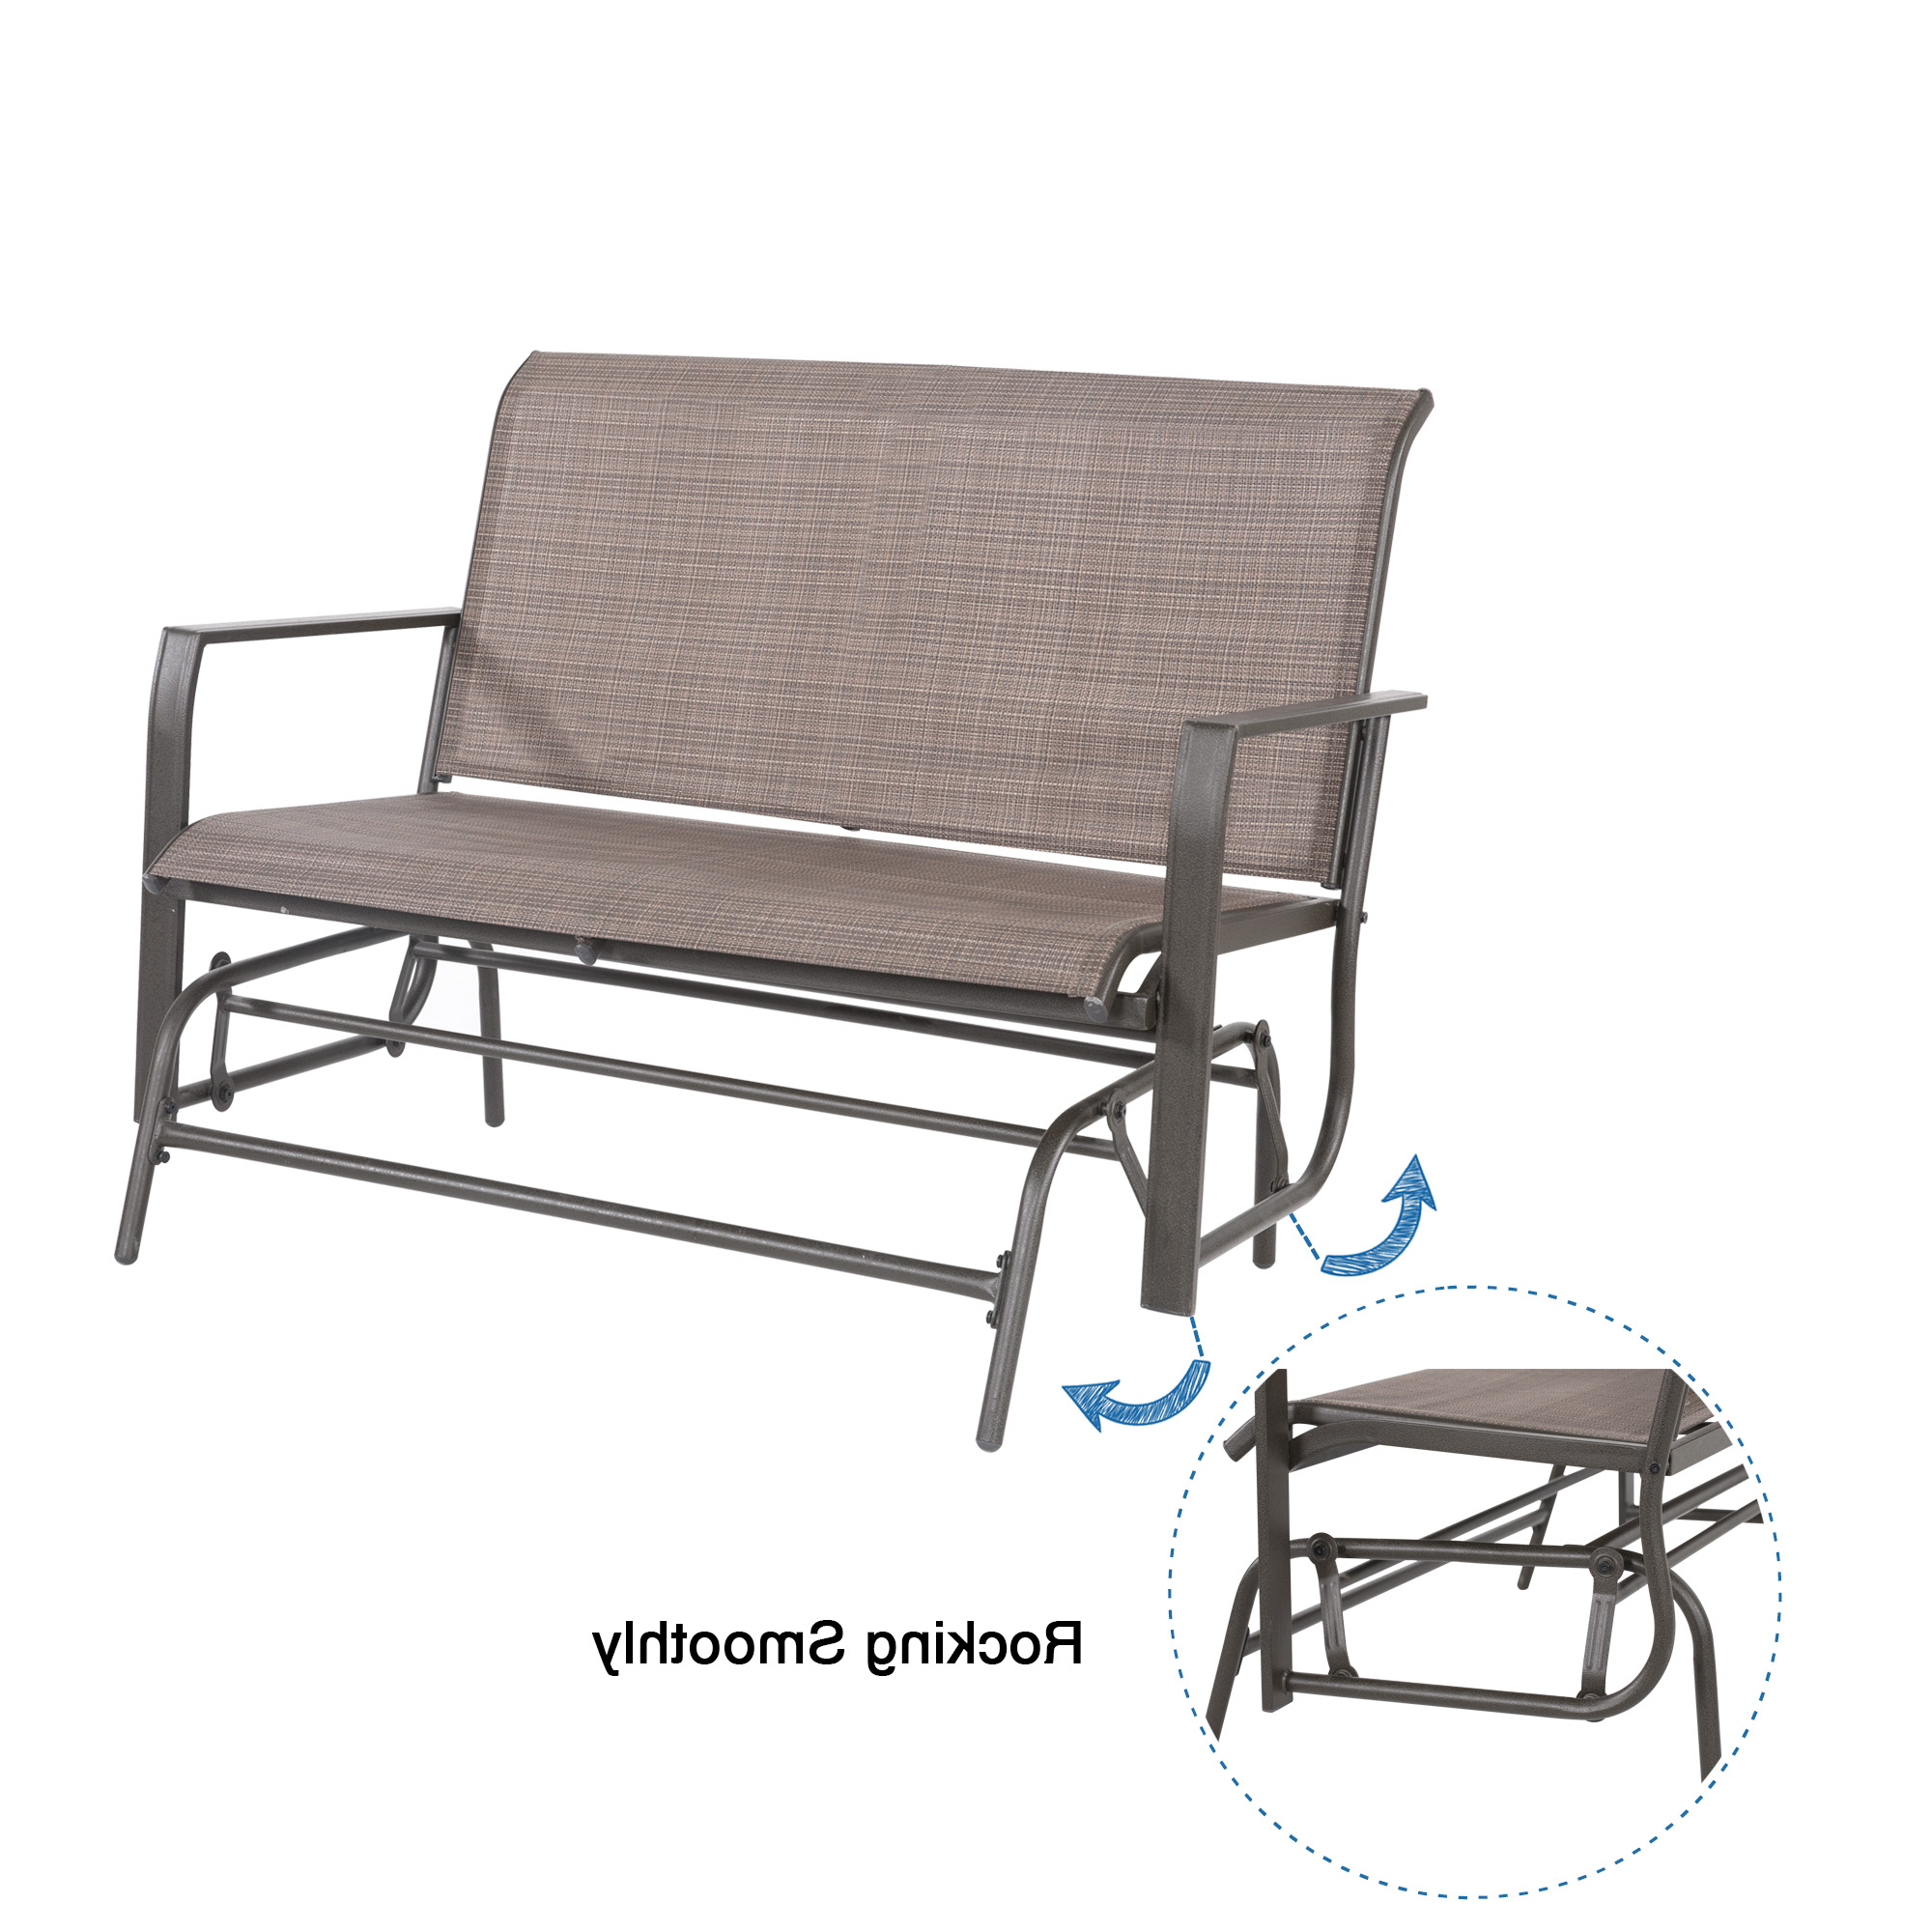 Cloud Mountain Patio Glider Bench Outdoor 2 Person Swing Within Current 2 Person Loveseat Chair Patio Porch Swings With Rocker (View 9 of 30)